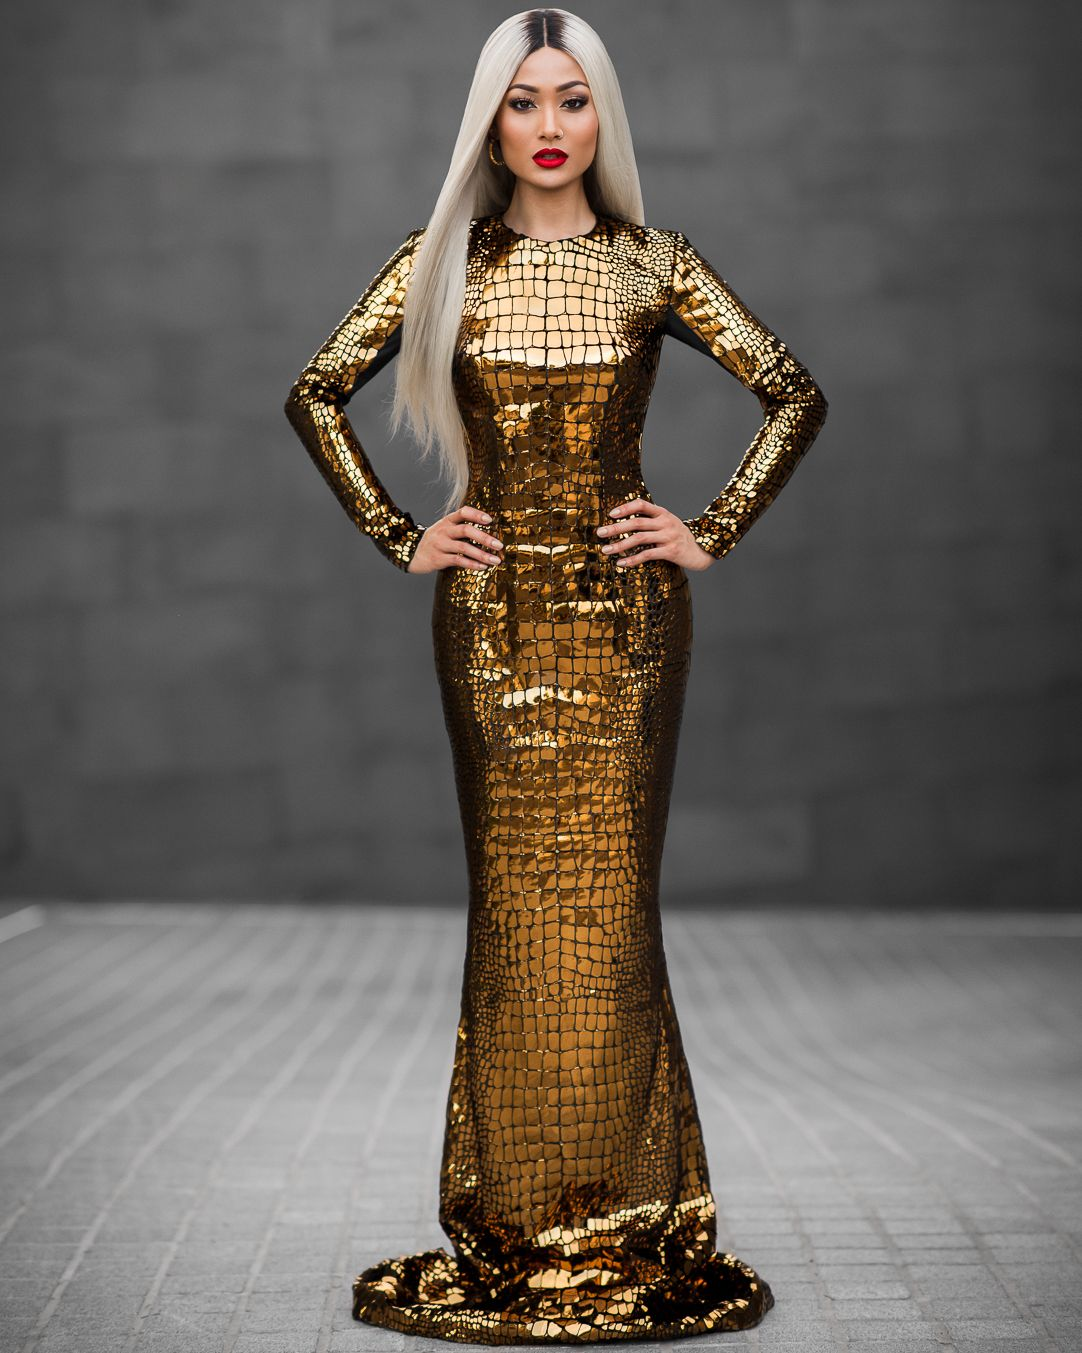 6 Ways to Look Glamorous in Gold | Micah gianneli, Gold gown and ...